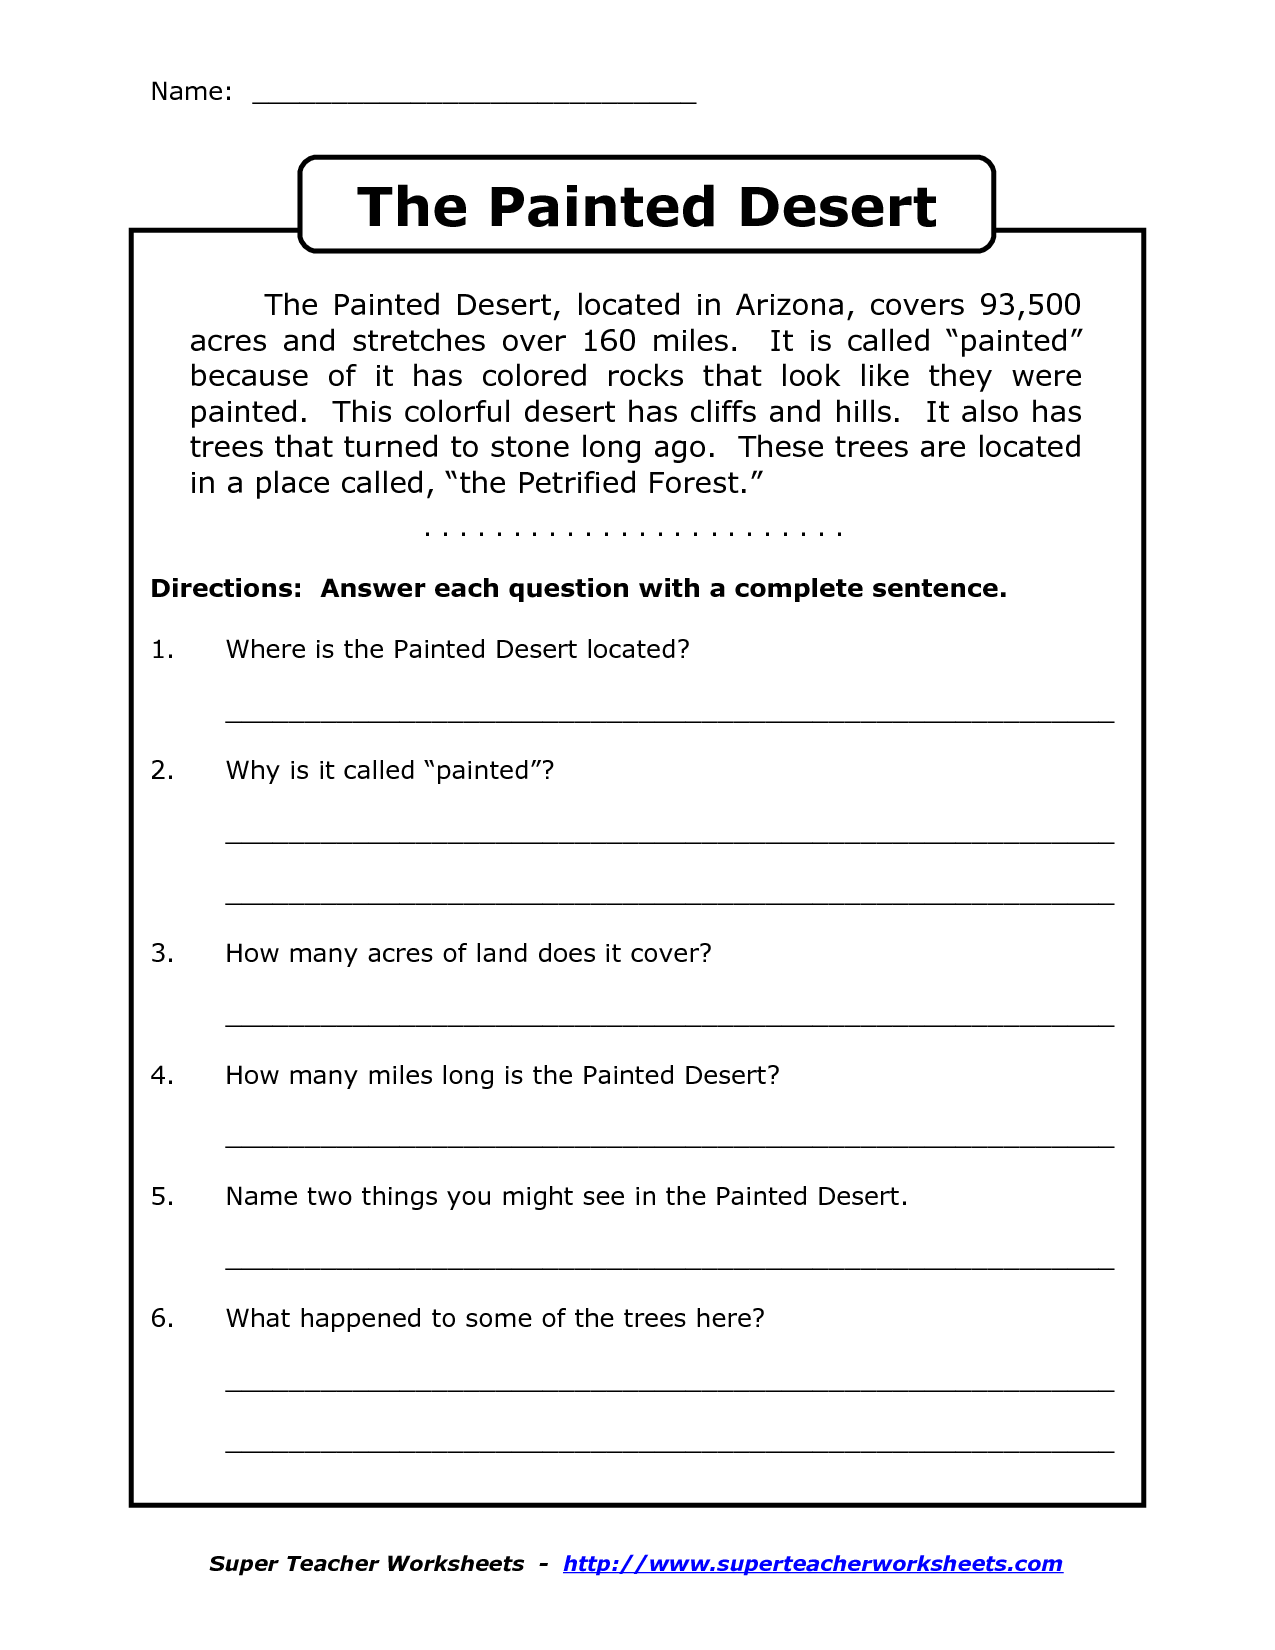 Worksheets Reading Comprehension 3rd Grade Worksheets reading worksheets for 4th grade comprehension 3 name the painted desert